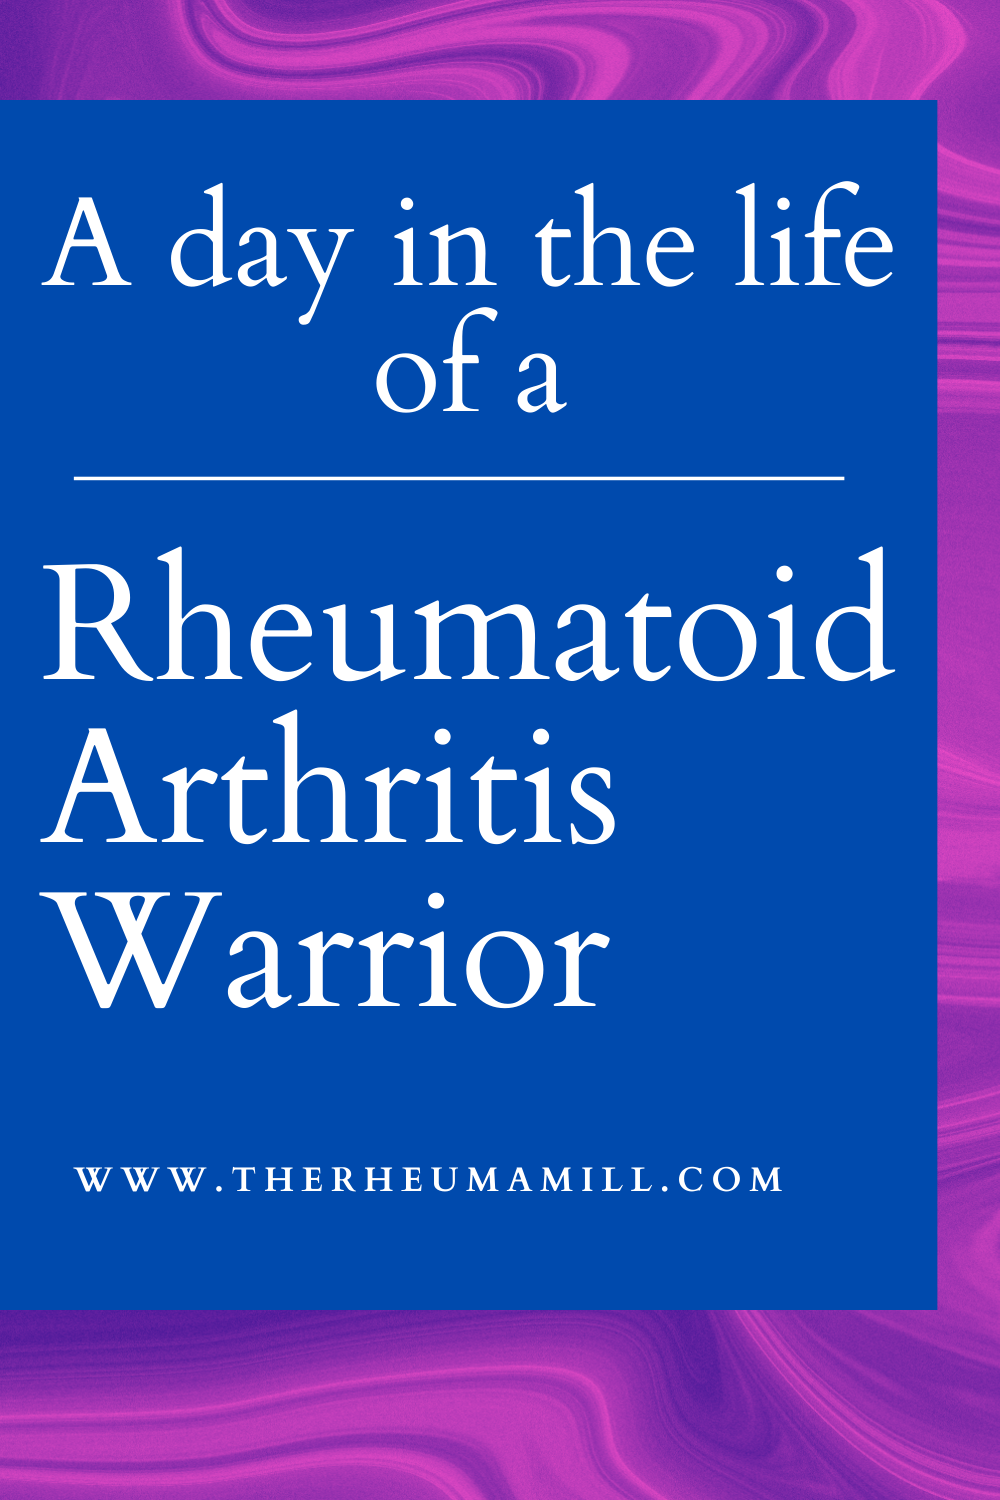 A day in the life of an RA Warrior